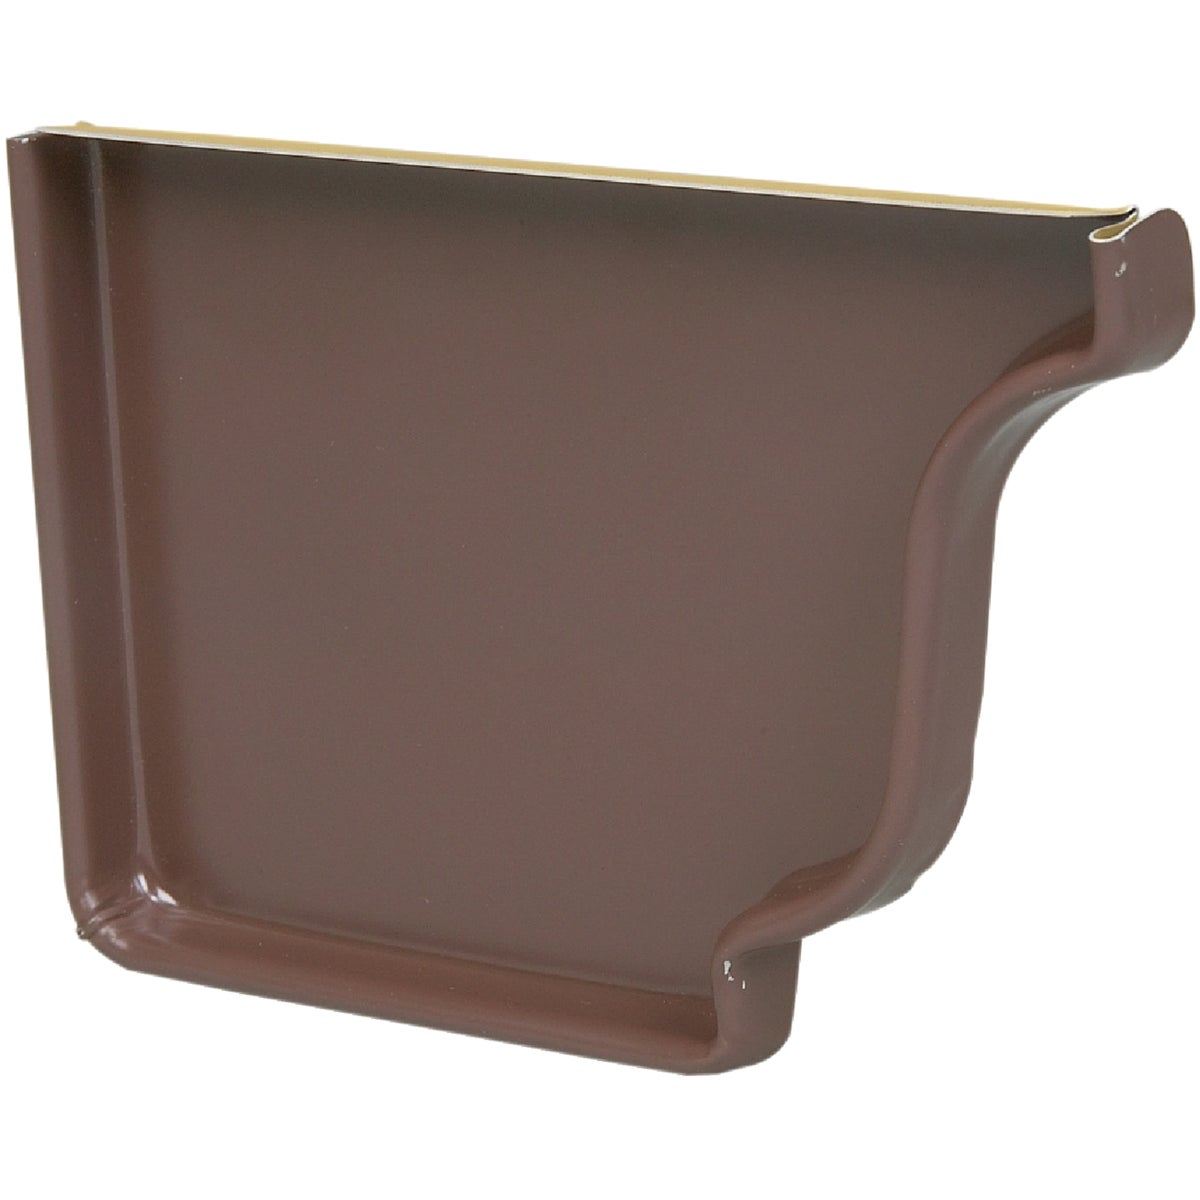 BROWN LEFT END CAP - 2520519 by Amerimax Home Prod